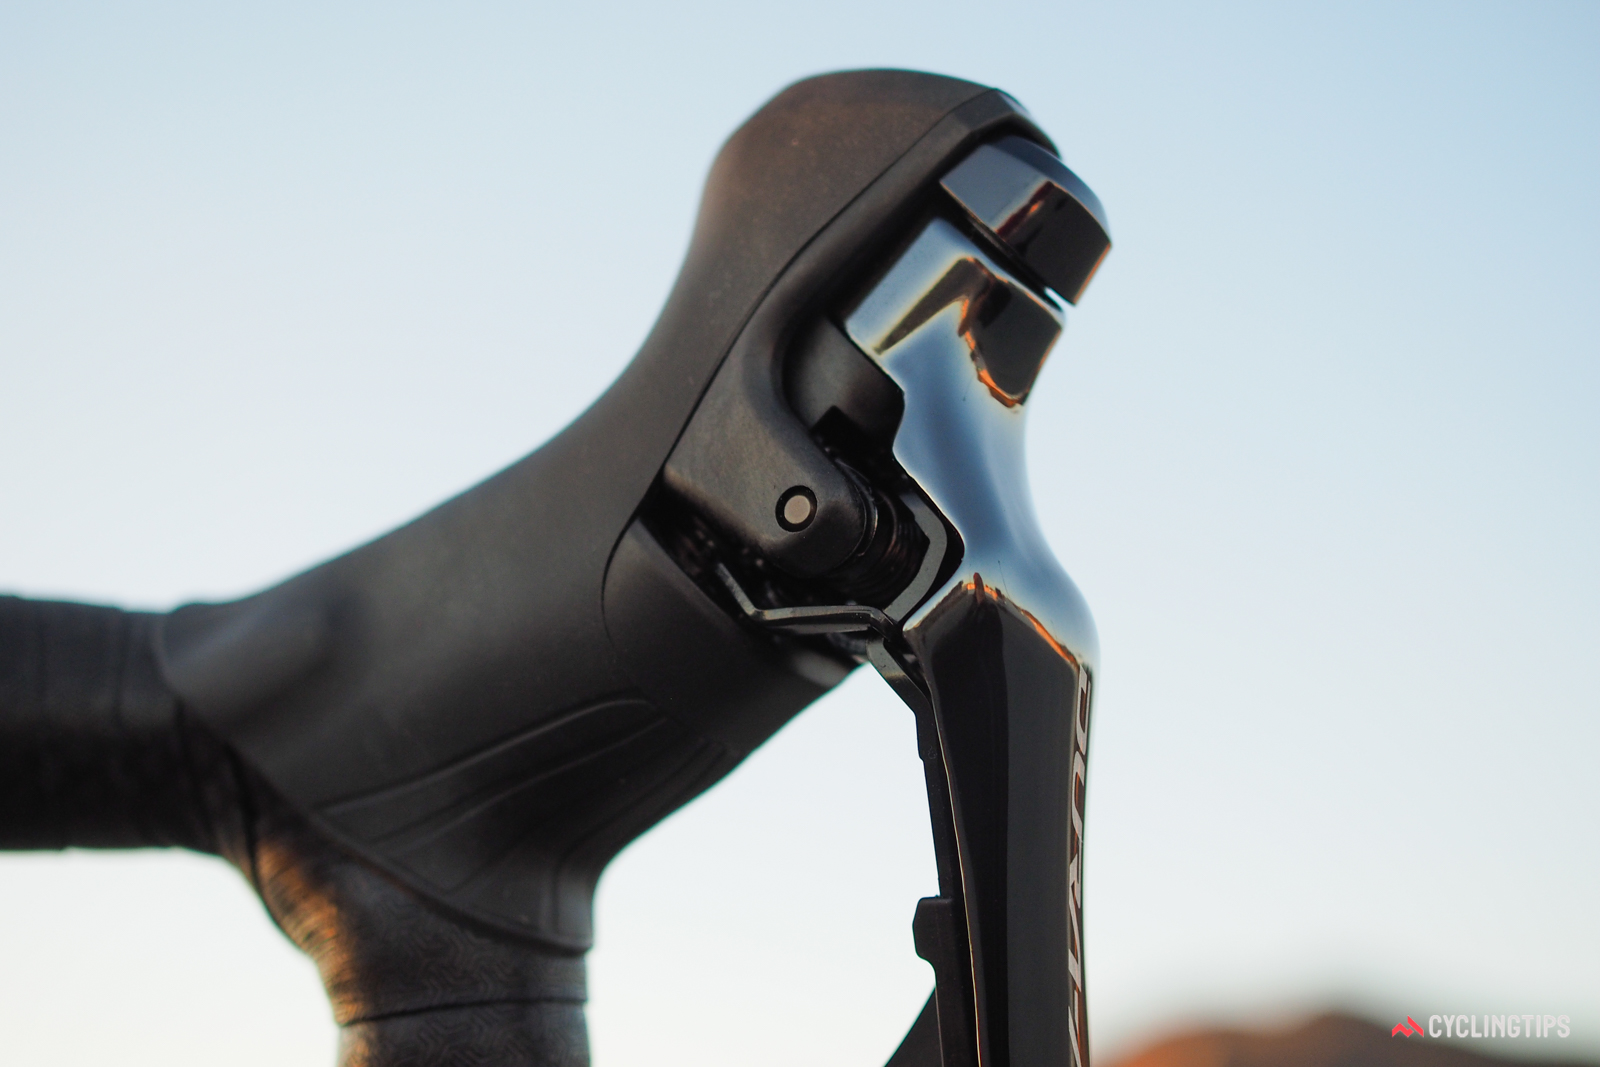 The shifter guts are protected to about the same level as before, but they're still prone to mud and sand in certain conditions - especially when racing cyclocross.